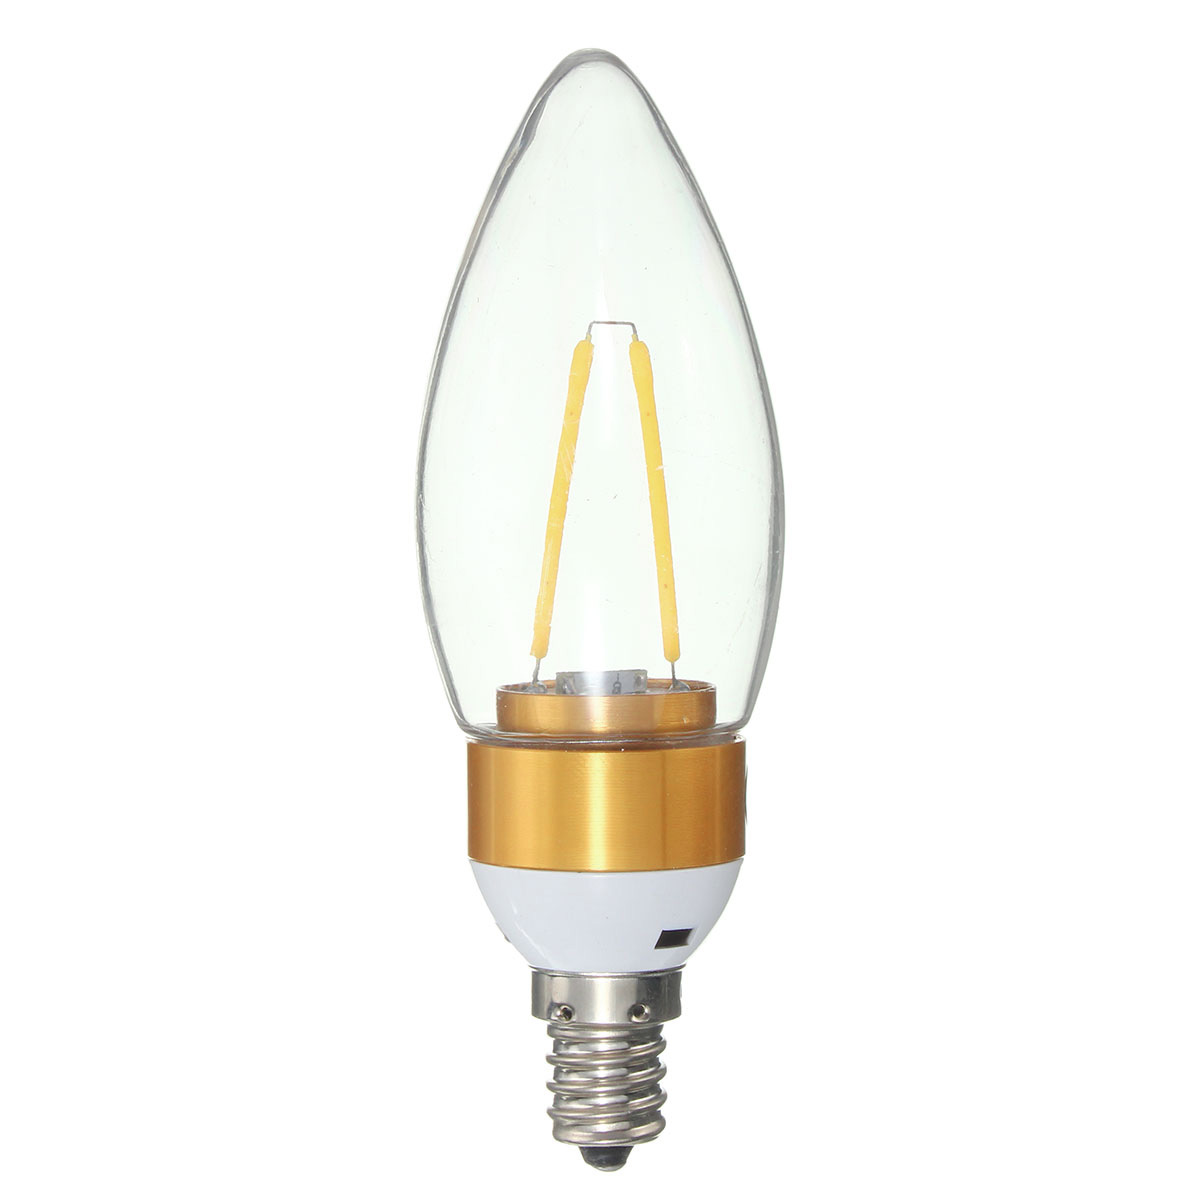 e27 e14 e12 b22 b15 2w non dimmable edison filament cob led candle light bulb lamp 110v alex nld. Black Bedroom Furniture Sets. Home Design Ideas